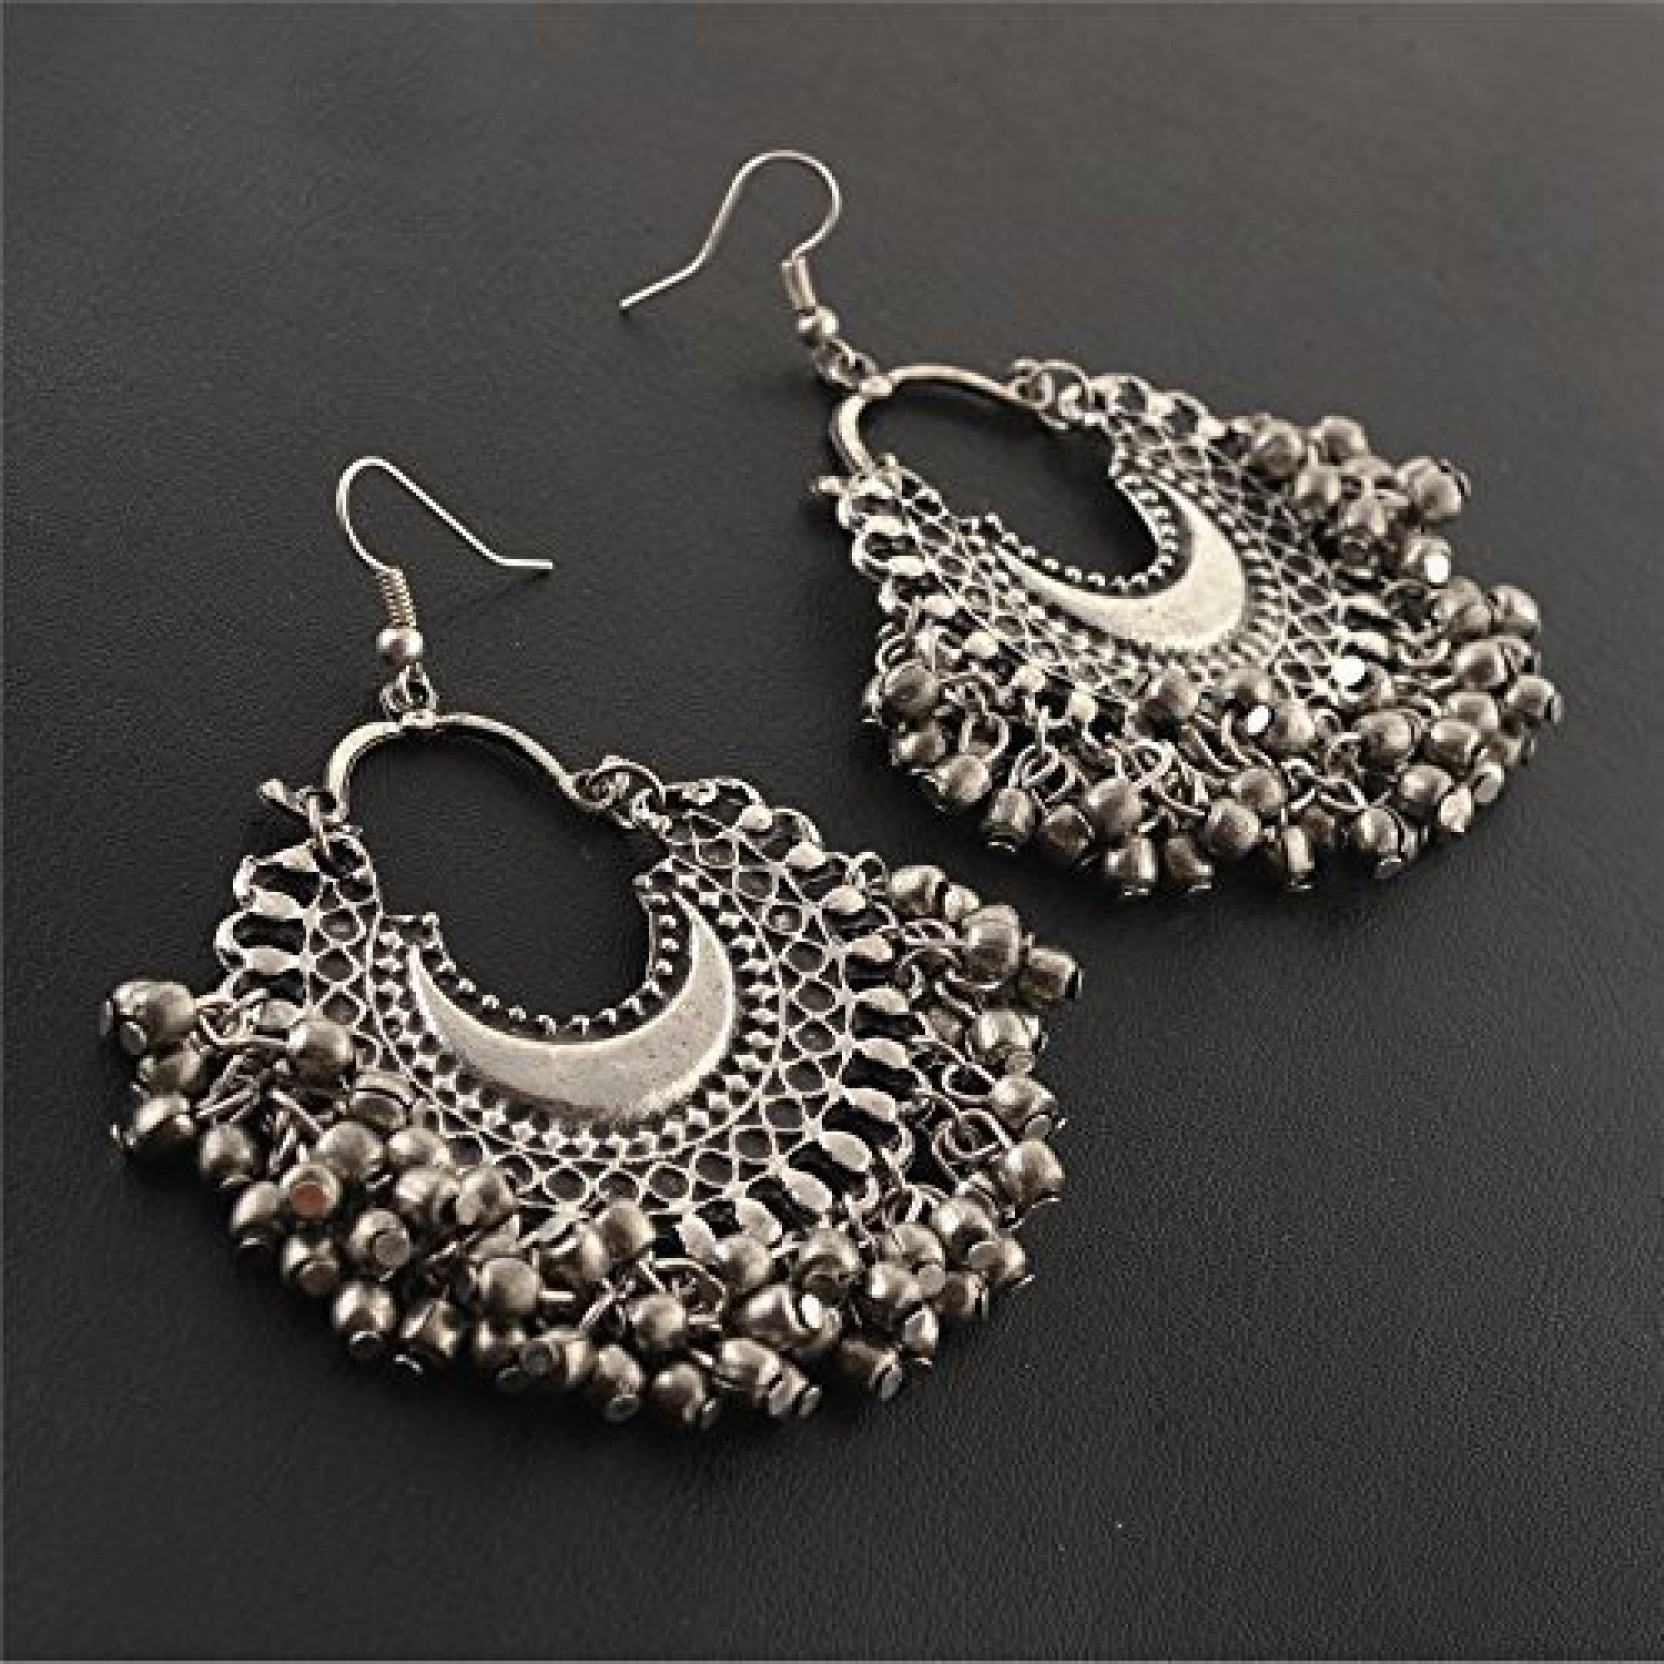 Shop designer Silver Earrings for Women Online on Voylla. Exclusive collection of designer & fashionable Sterling Silver earrings for Women Online.